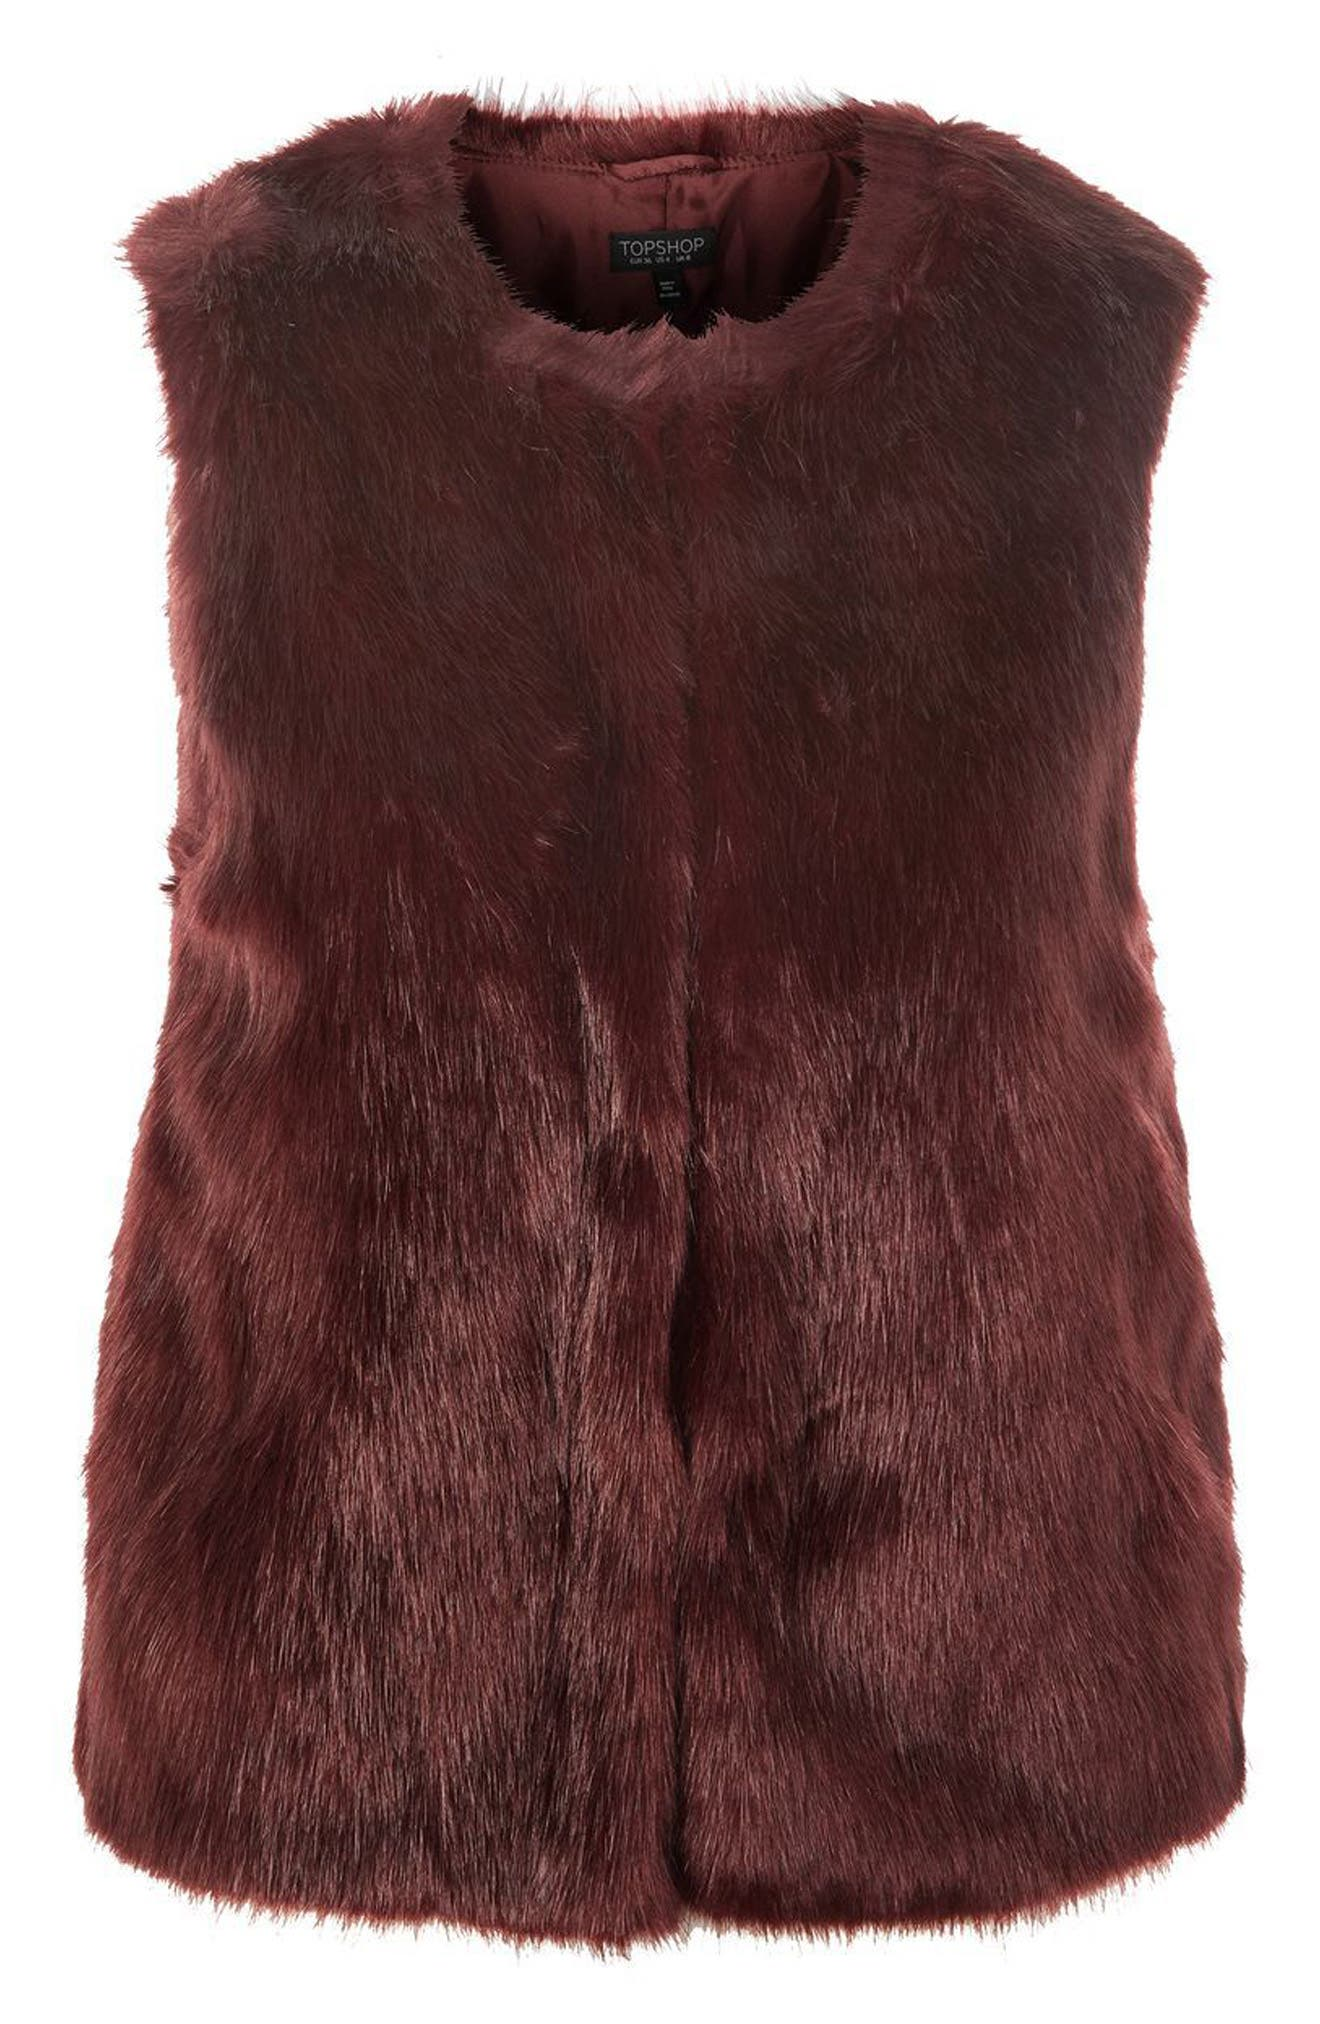 TOPSHOP,                             Clair Faux Fur Vest,                             Alternate thumbnail 4, color,                             020